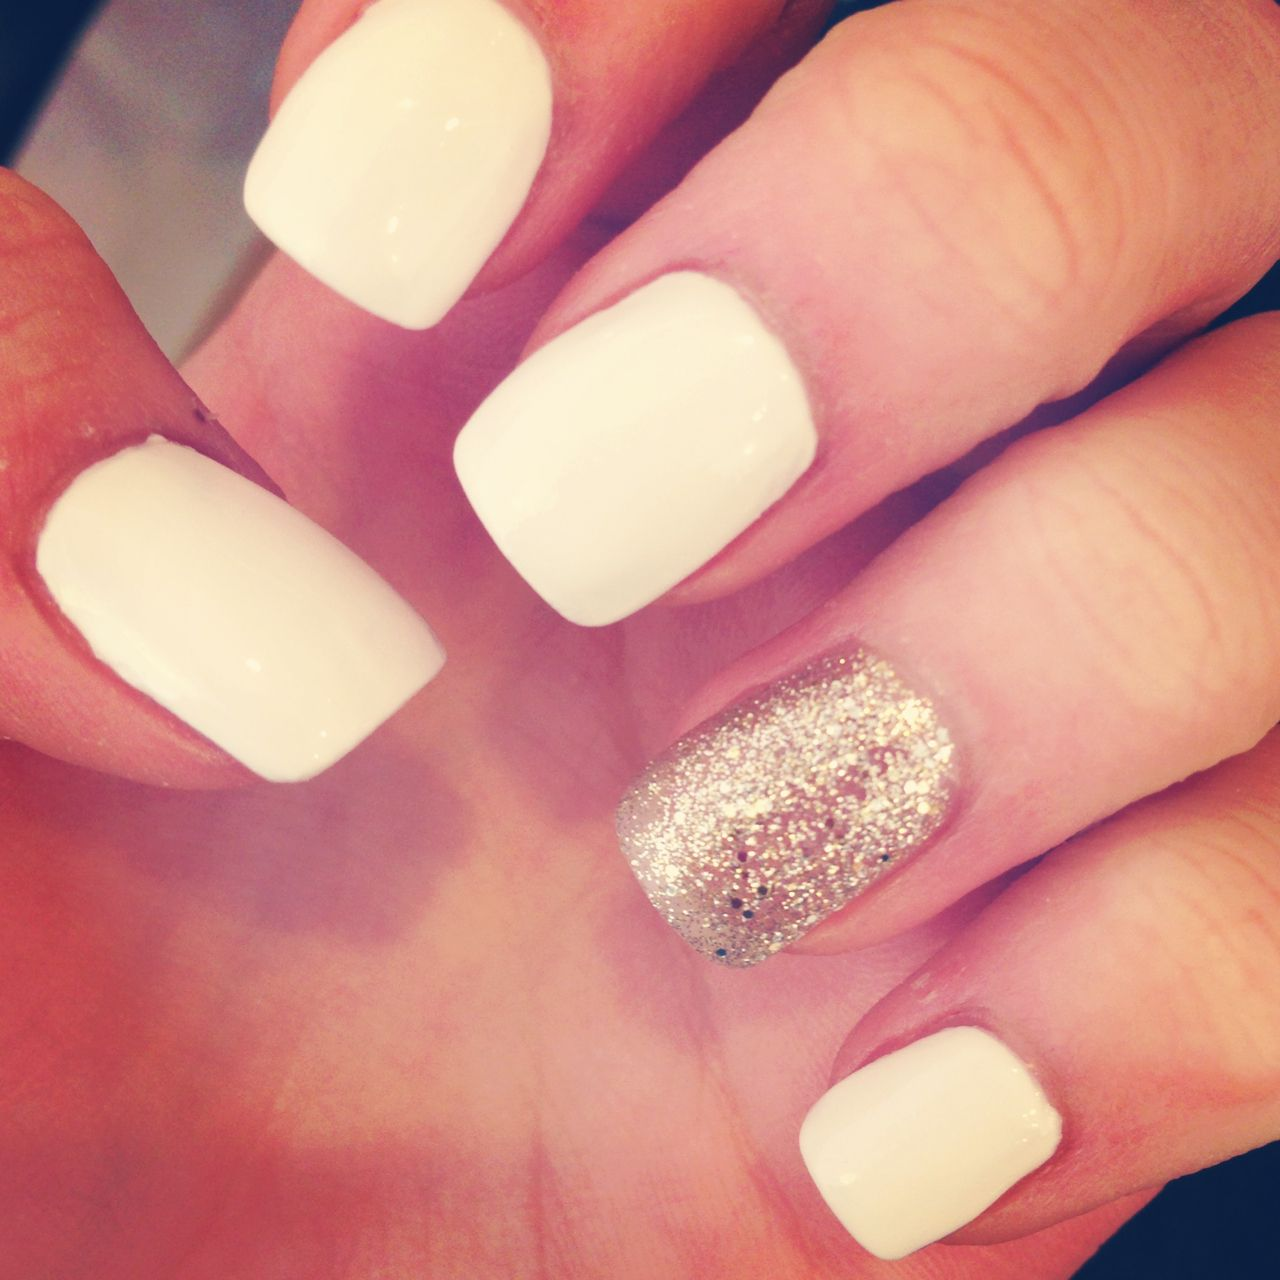 Pin by Becca Kaphingst on Active :) | Pinterest | Makeup, Gold and ...